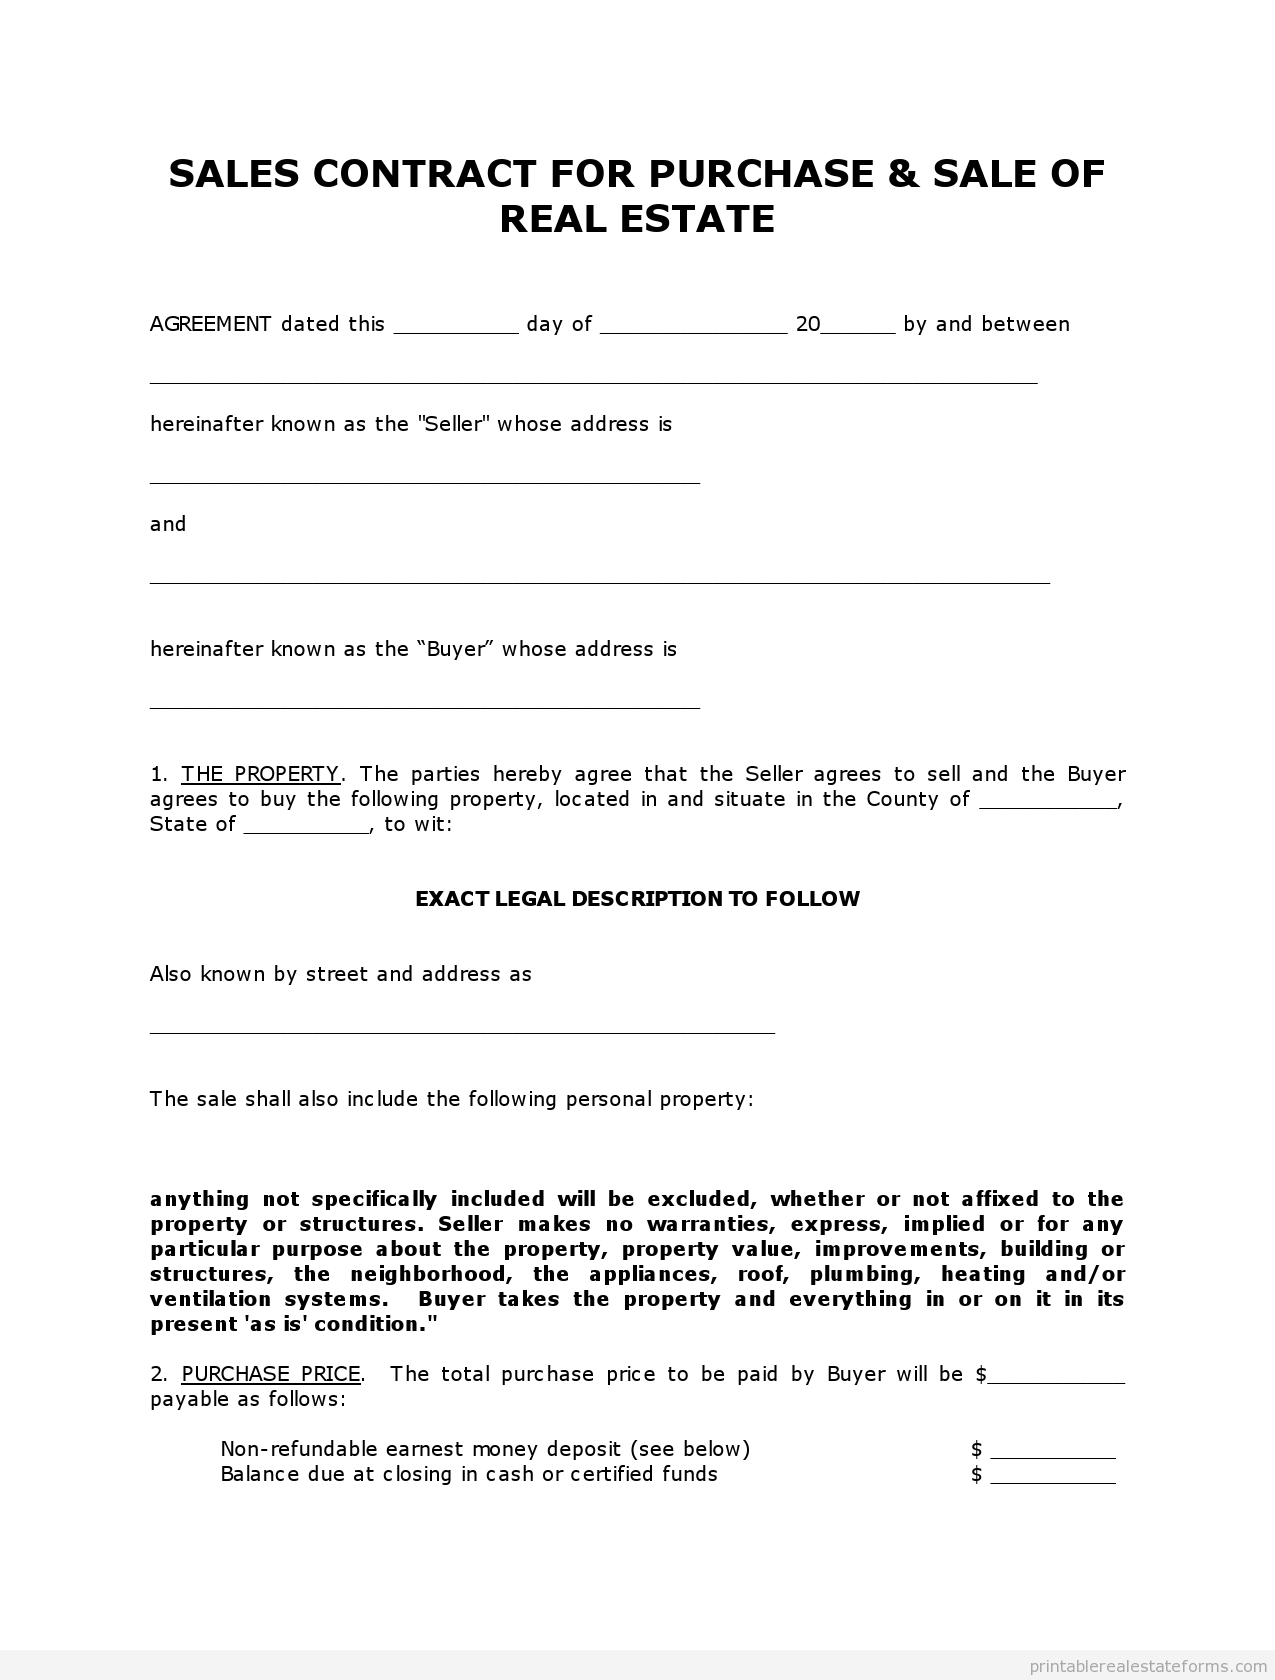 Free printable land contract forms word file for Simple lbo model template